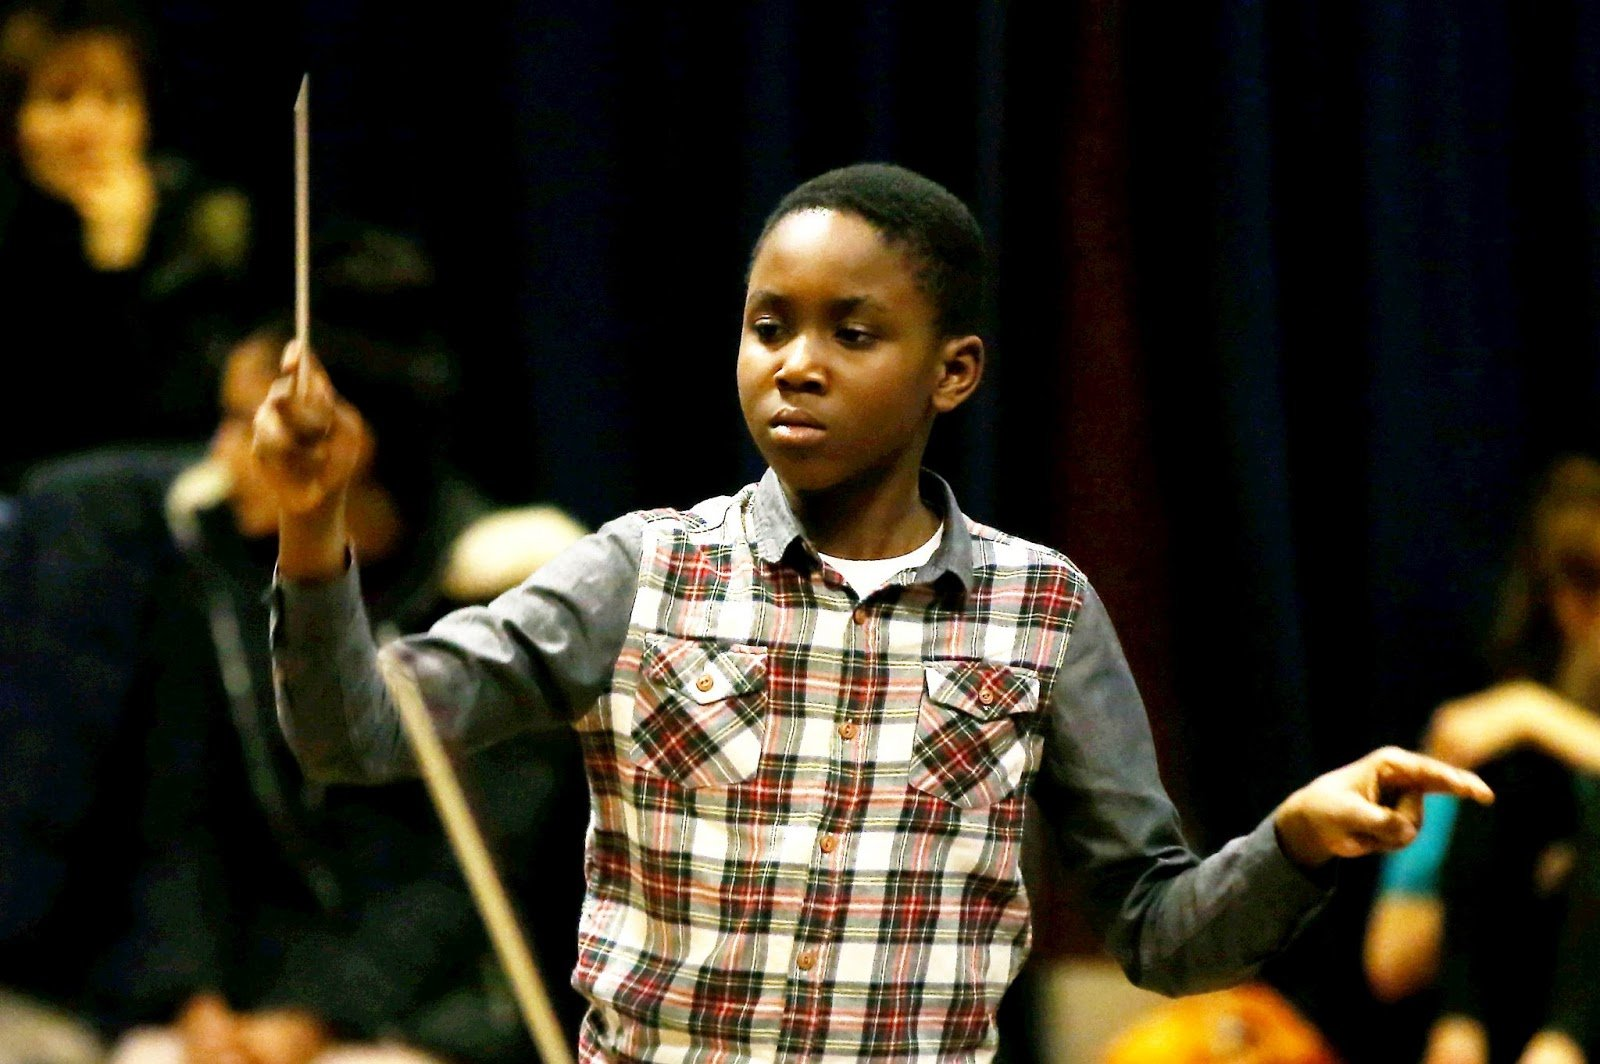 11-Year-Old Black Prodigy Will Become World's Youngest Orchestra Conductor